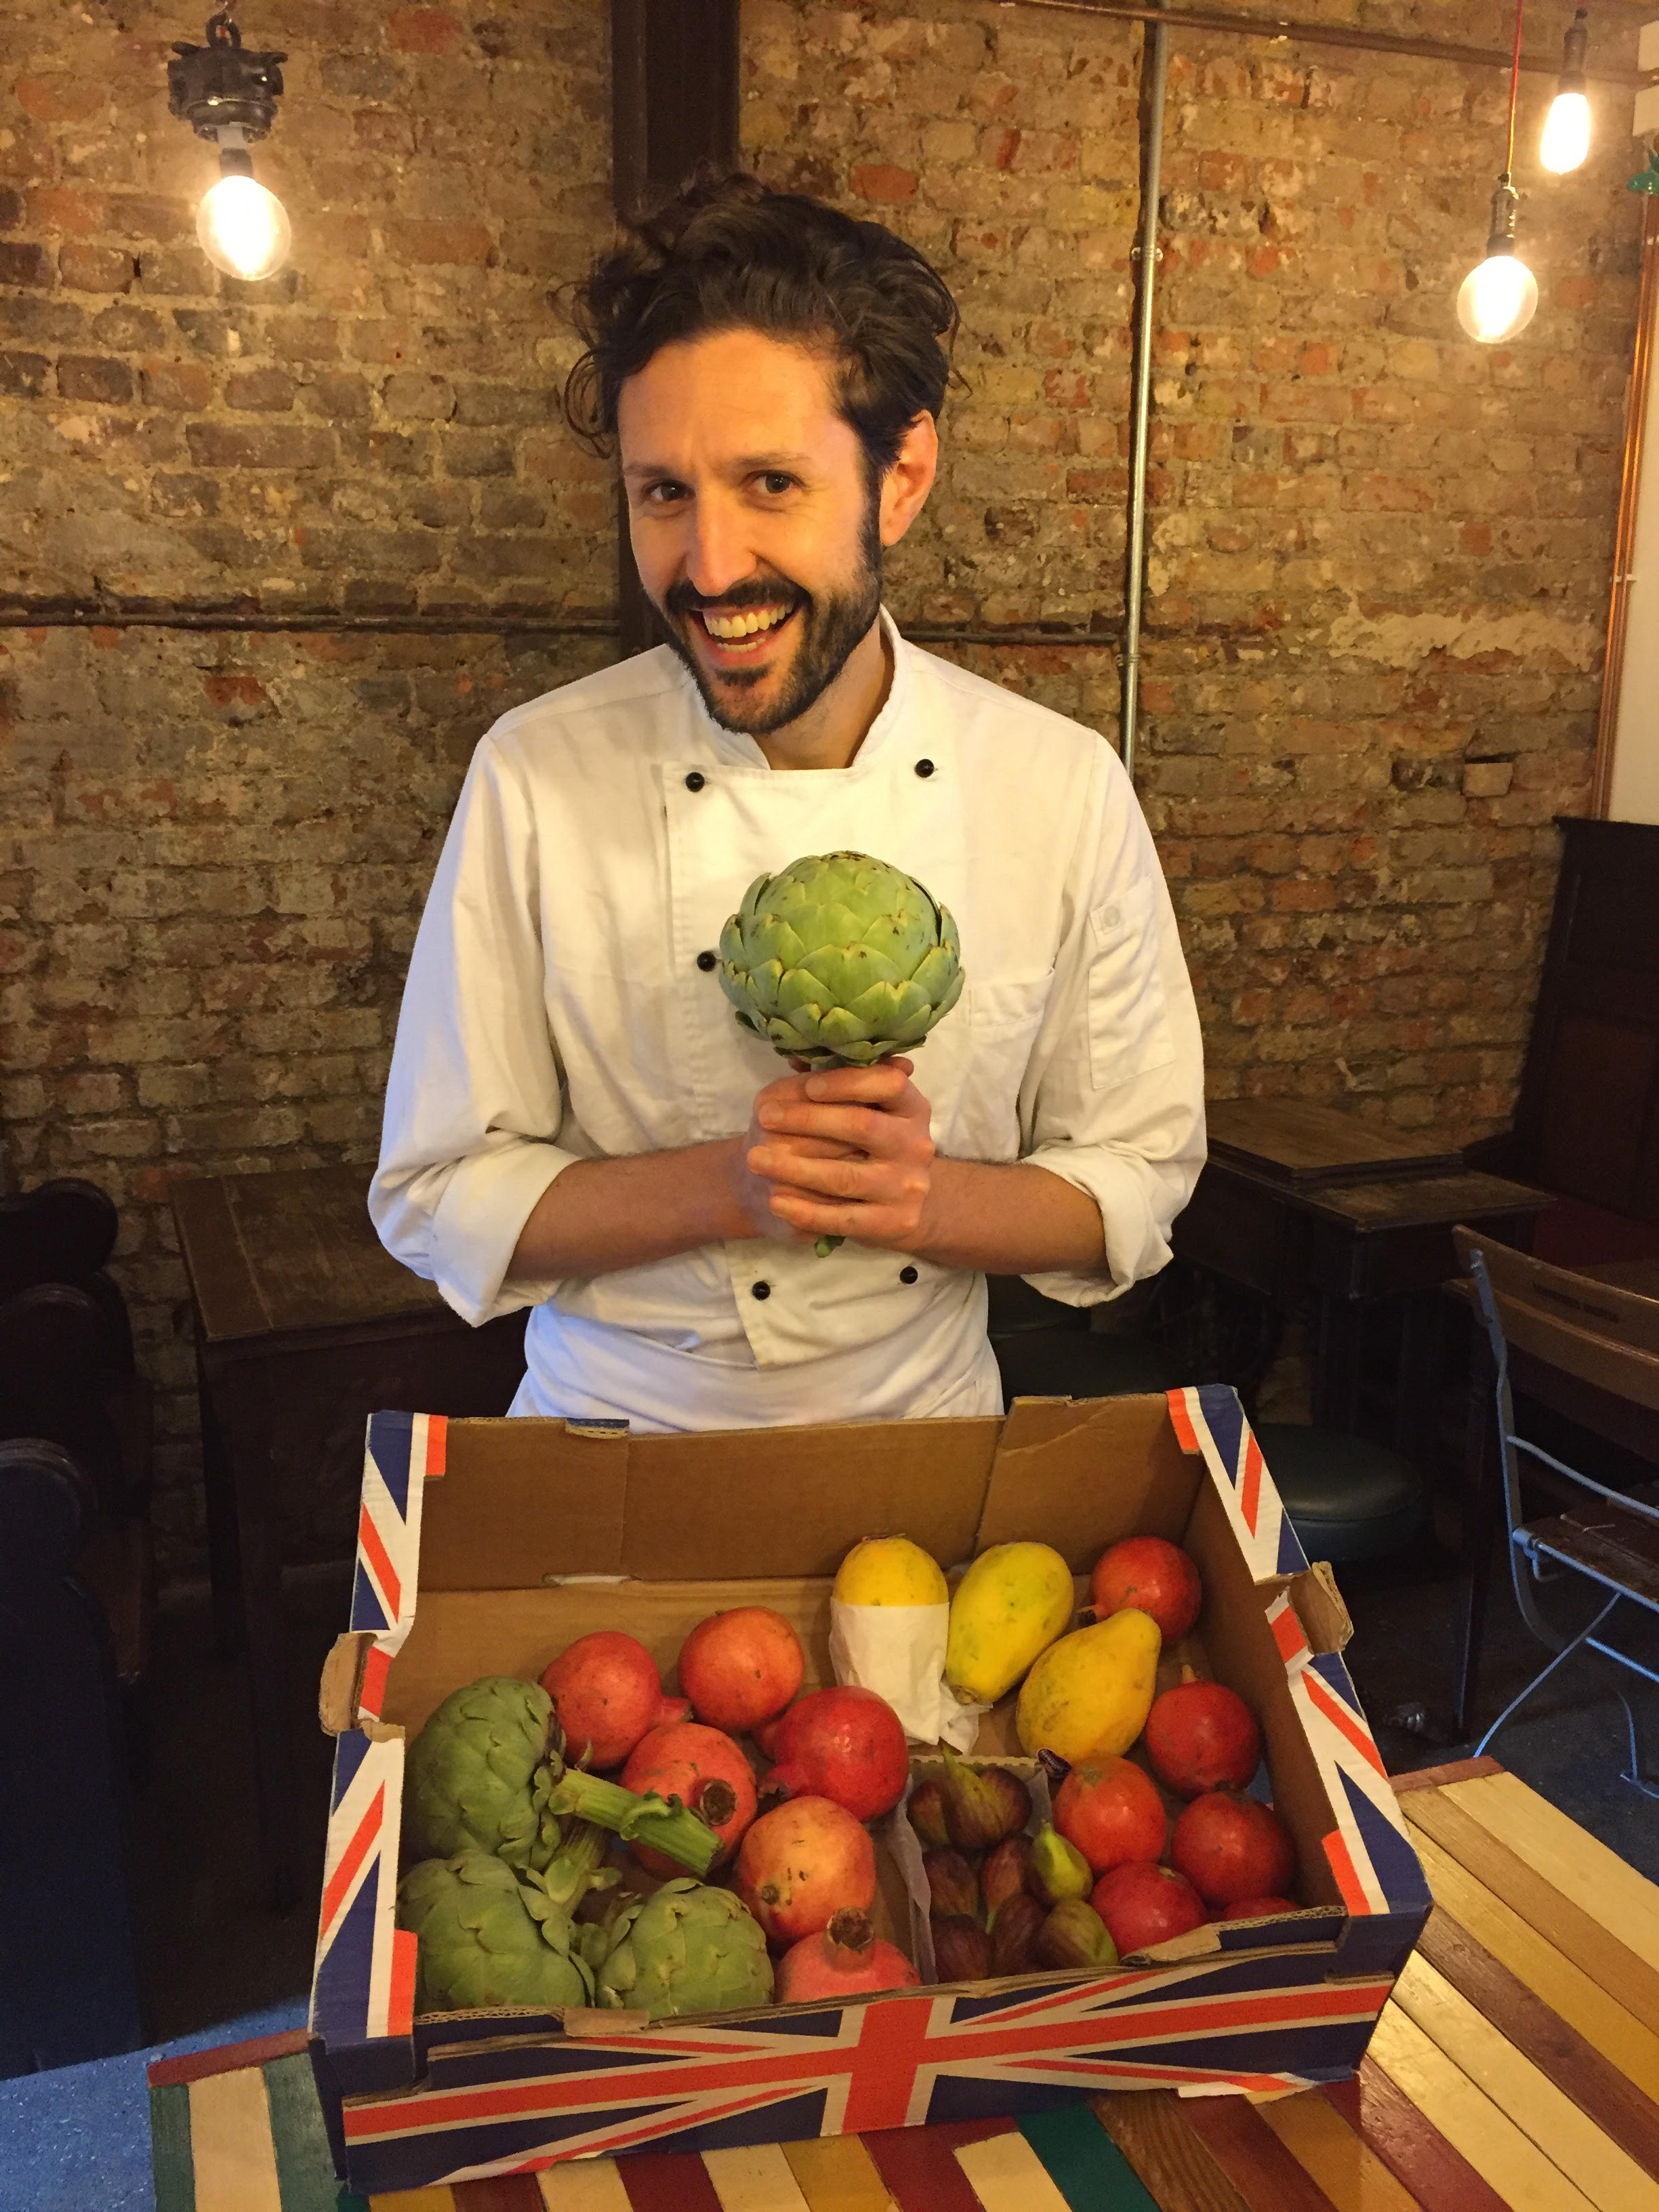 THANK YOU Ted's Veg for a bounty of beautiful, local, seasonal, and chemical-free fruit & veg that will make for a fabulous feast!!  Say hi to Kath & Ted at Borough Market if you pass by ;)  Here's our lovely food stylist & chef Spyros Parissis showing off a healthy artichoke. 8.8.17